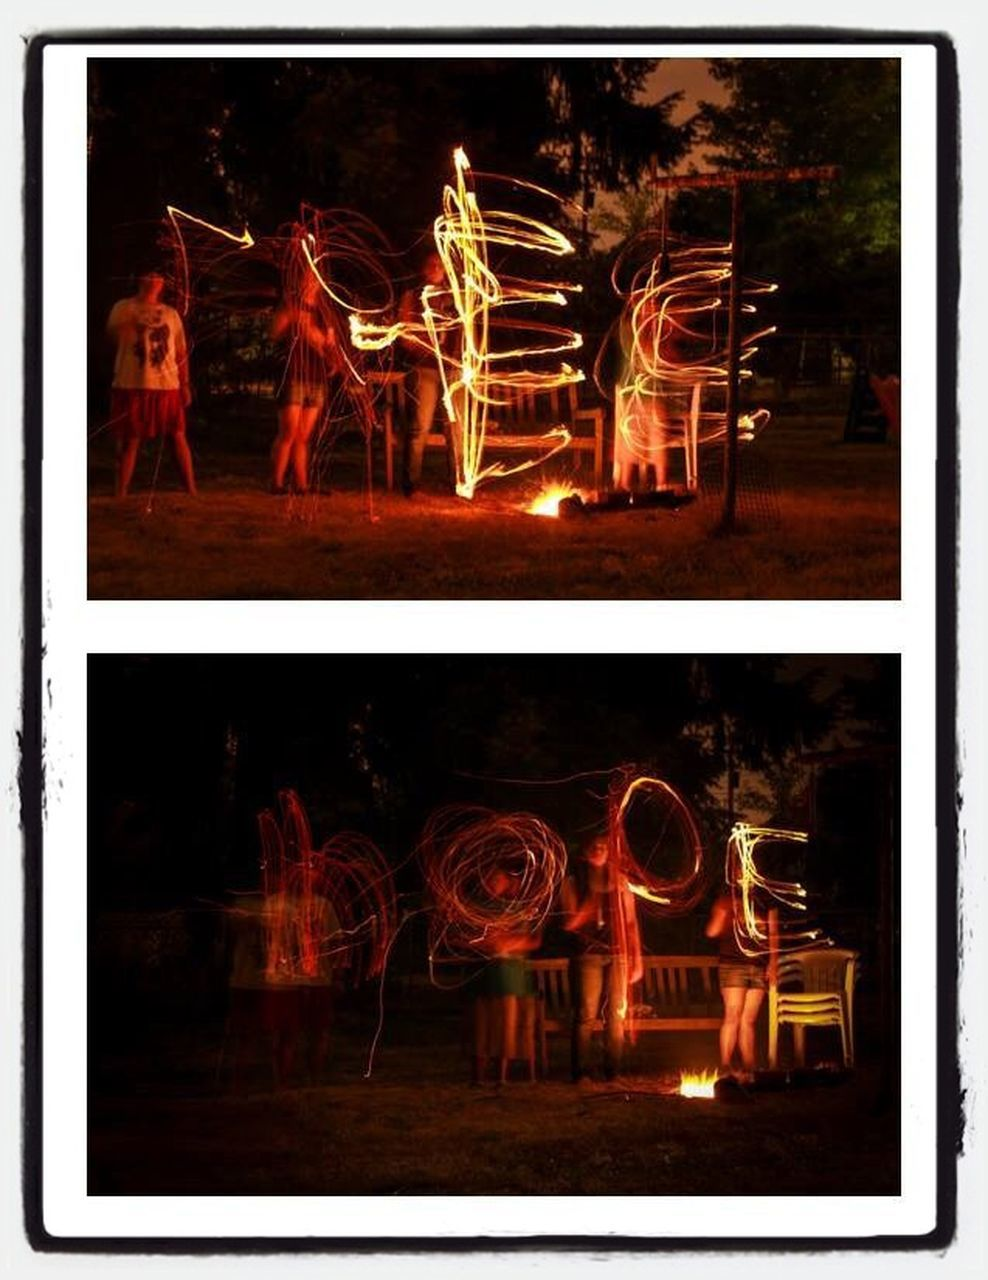 illuminated, night, burning, multiple image, long exposure, abstract, flame, motion, no people, collage, indoors, close-up